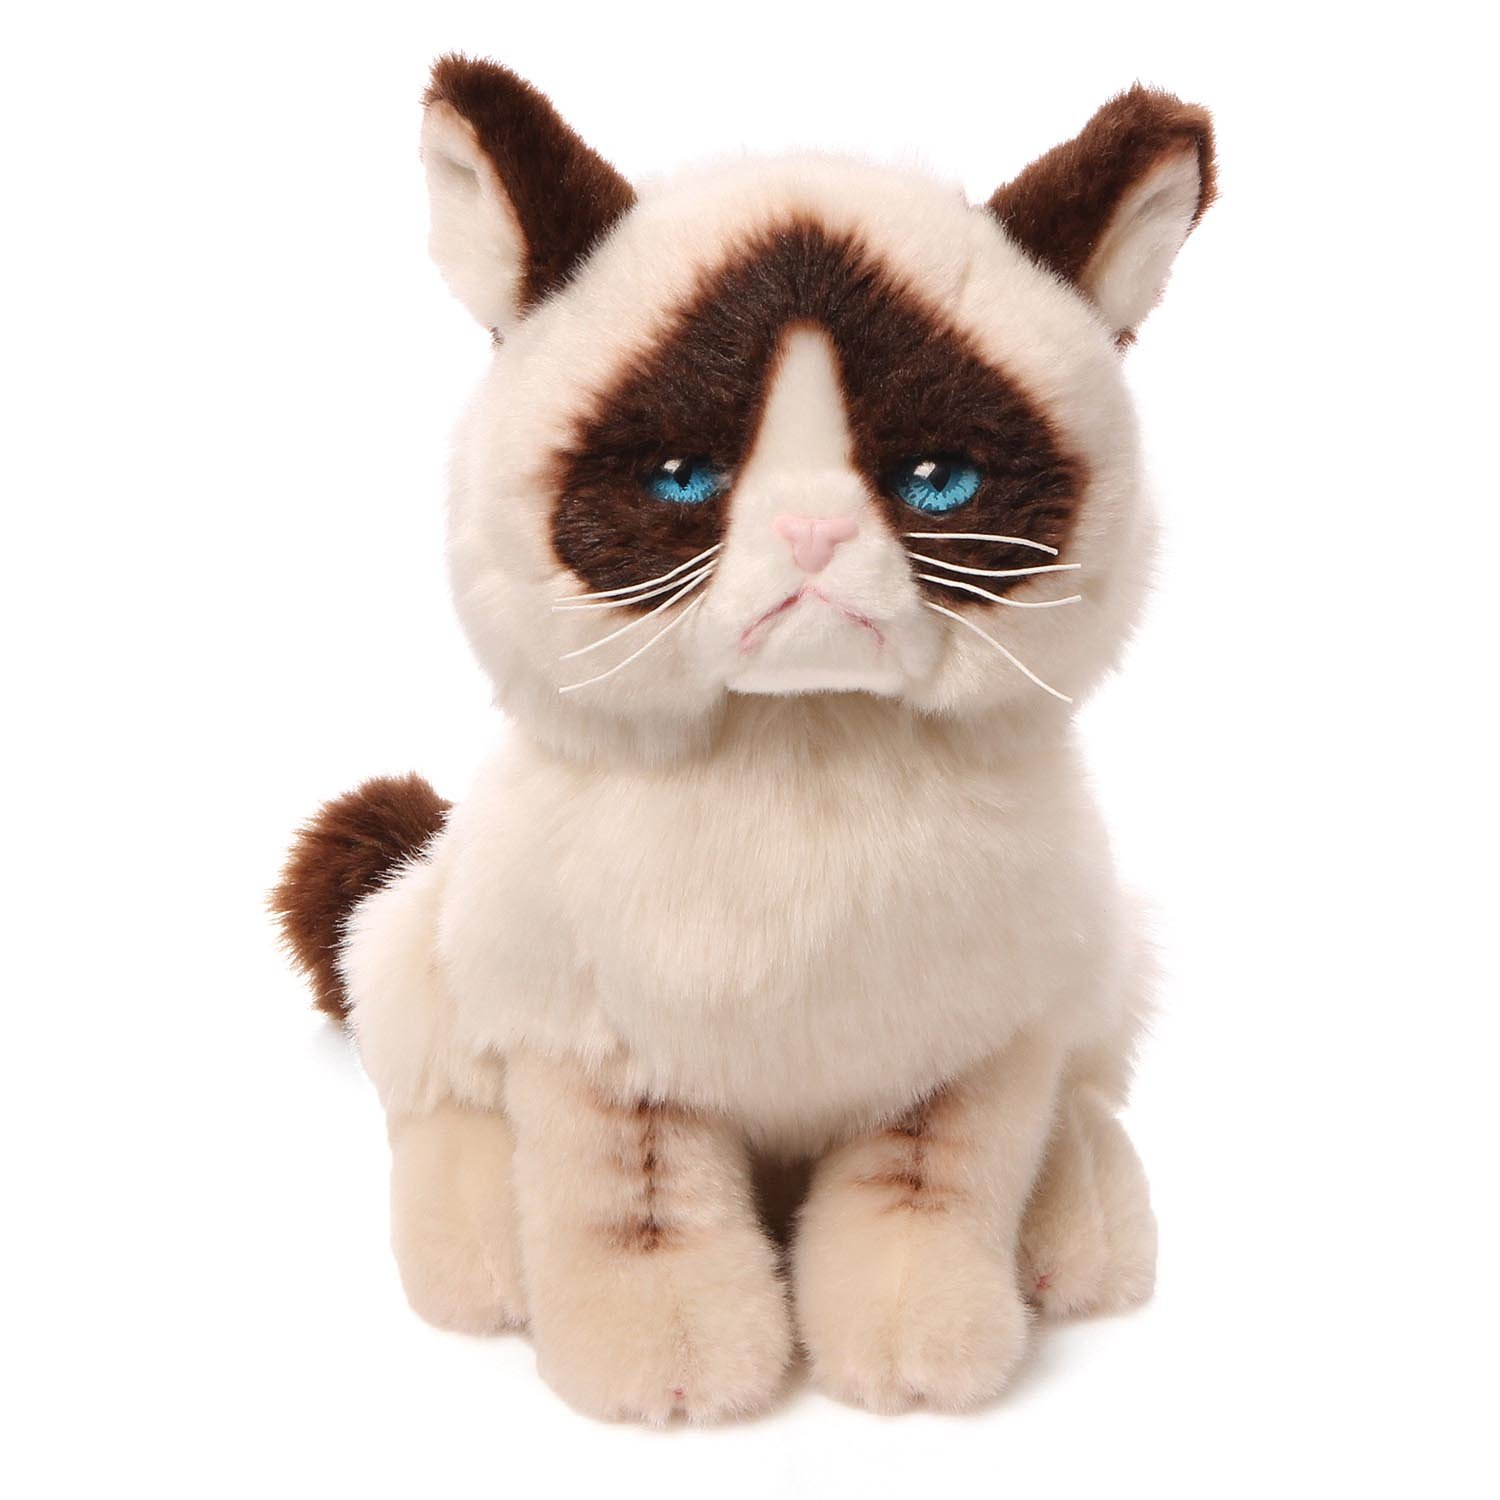 GUND Grumpy Cat Stuffed Animal Plush, 9""